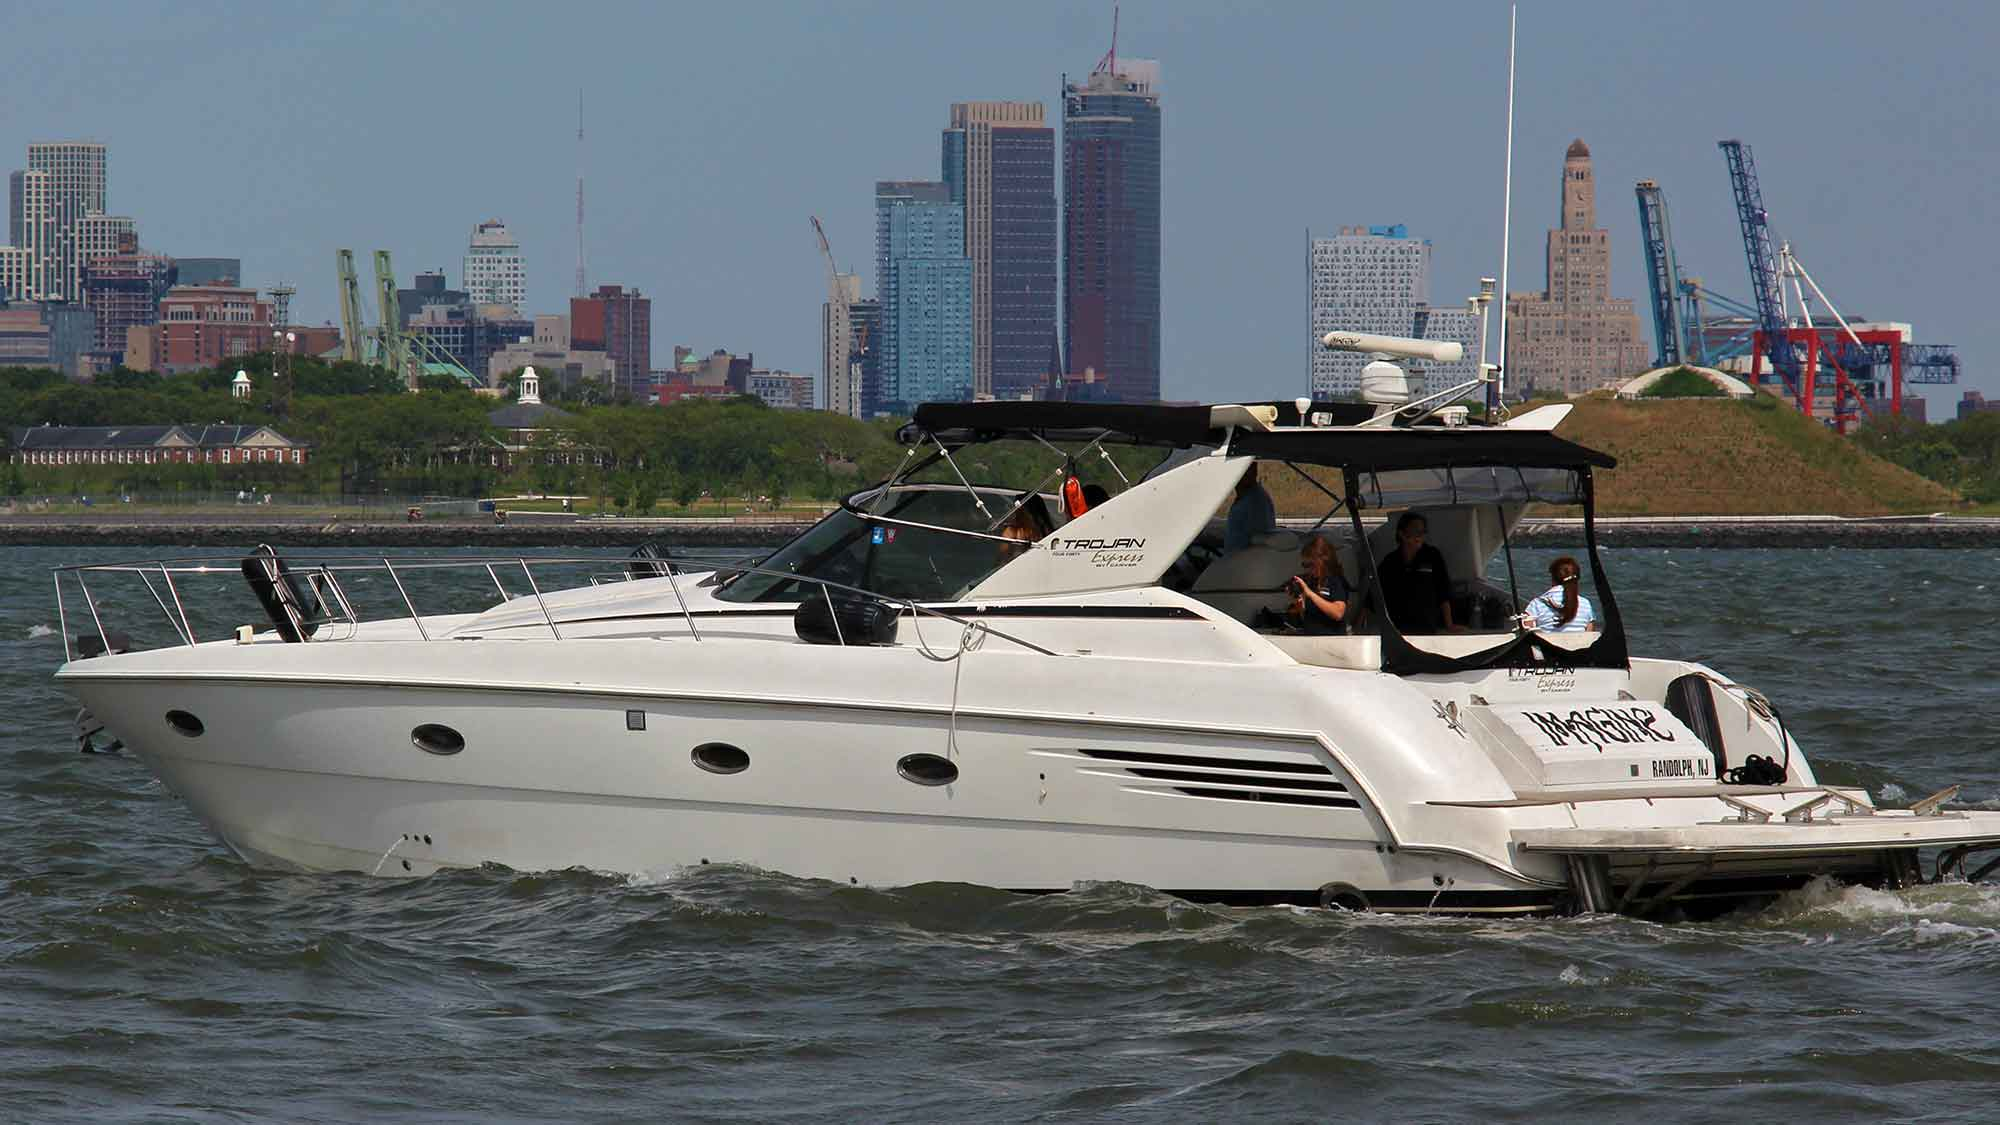 Motor Yacht in NYC